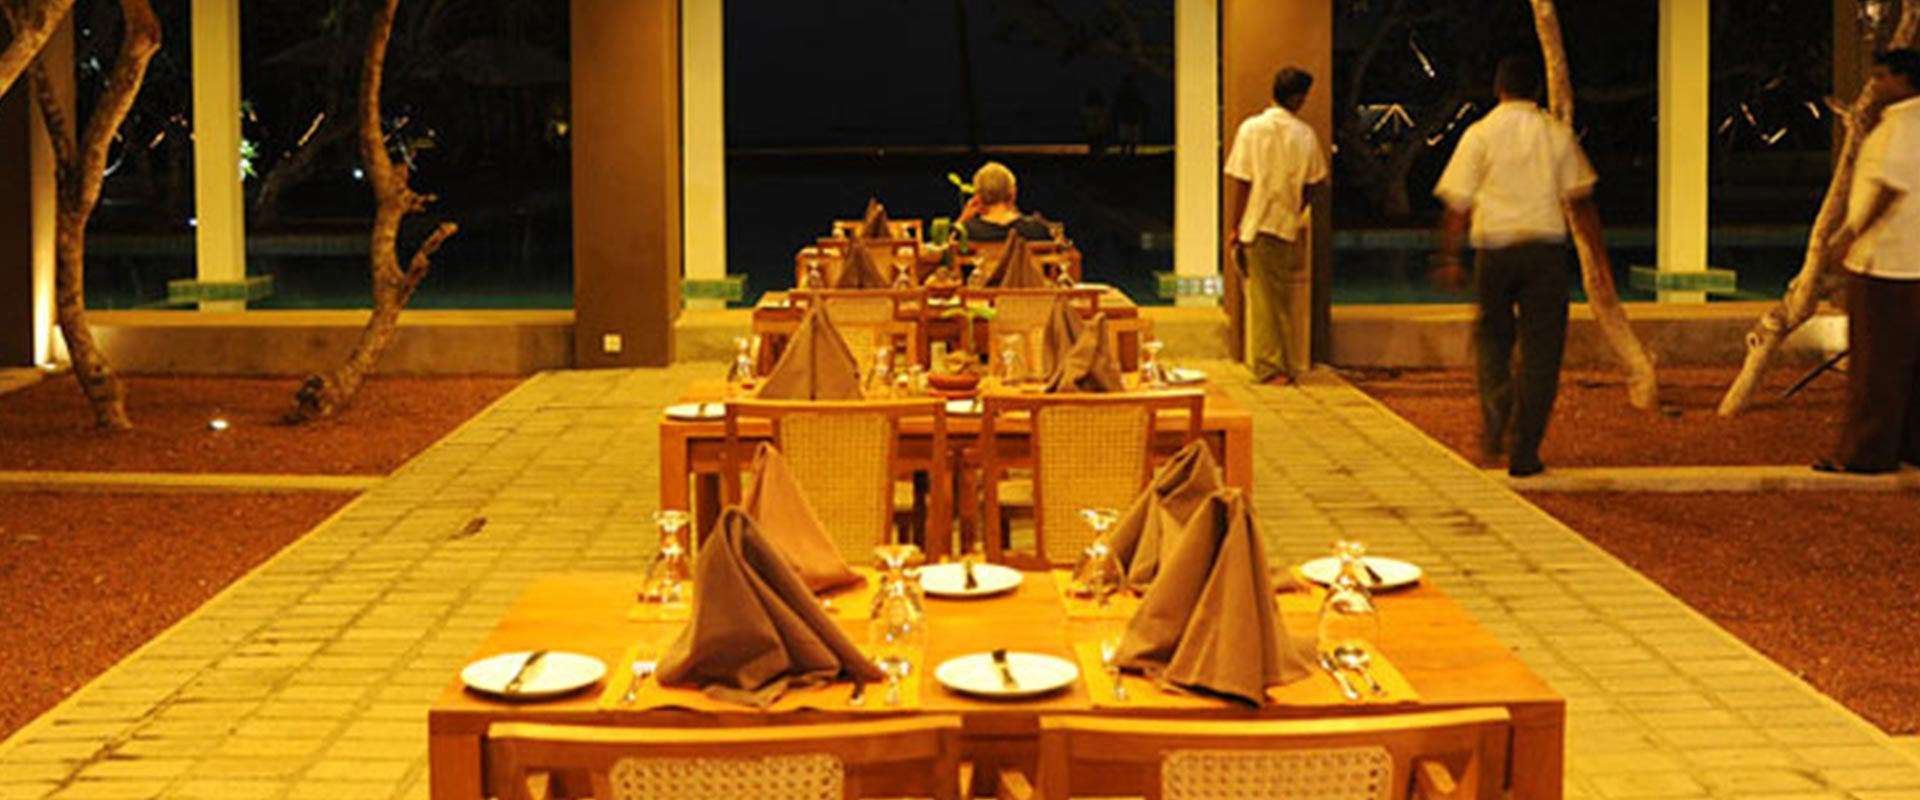 Dining hall table arrangement at Heritance Ayurveda